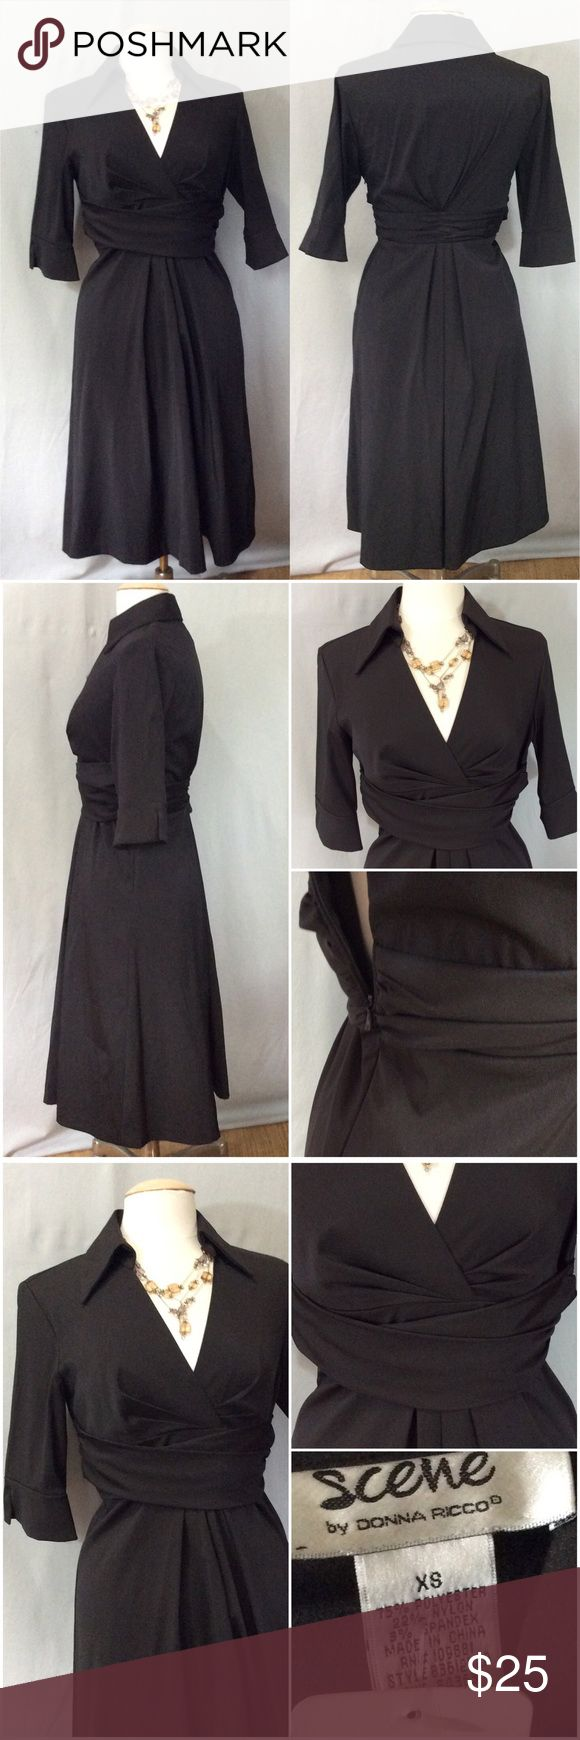 NWT Scene by Donna Ricco Black Taffeta Shirt Dress NWT Scene By Donna Ricco Black Taffeta Shirt Dress. Gorgeous Collar and Detailed Waist, Zipper Side Closure. Pulls Over Head. 75% Polyester, 22%Nylon, 3% Spandex. Donna Ricco Dresses Midi